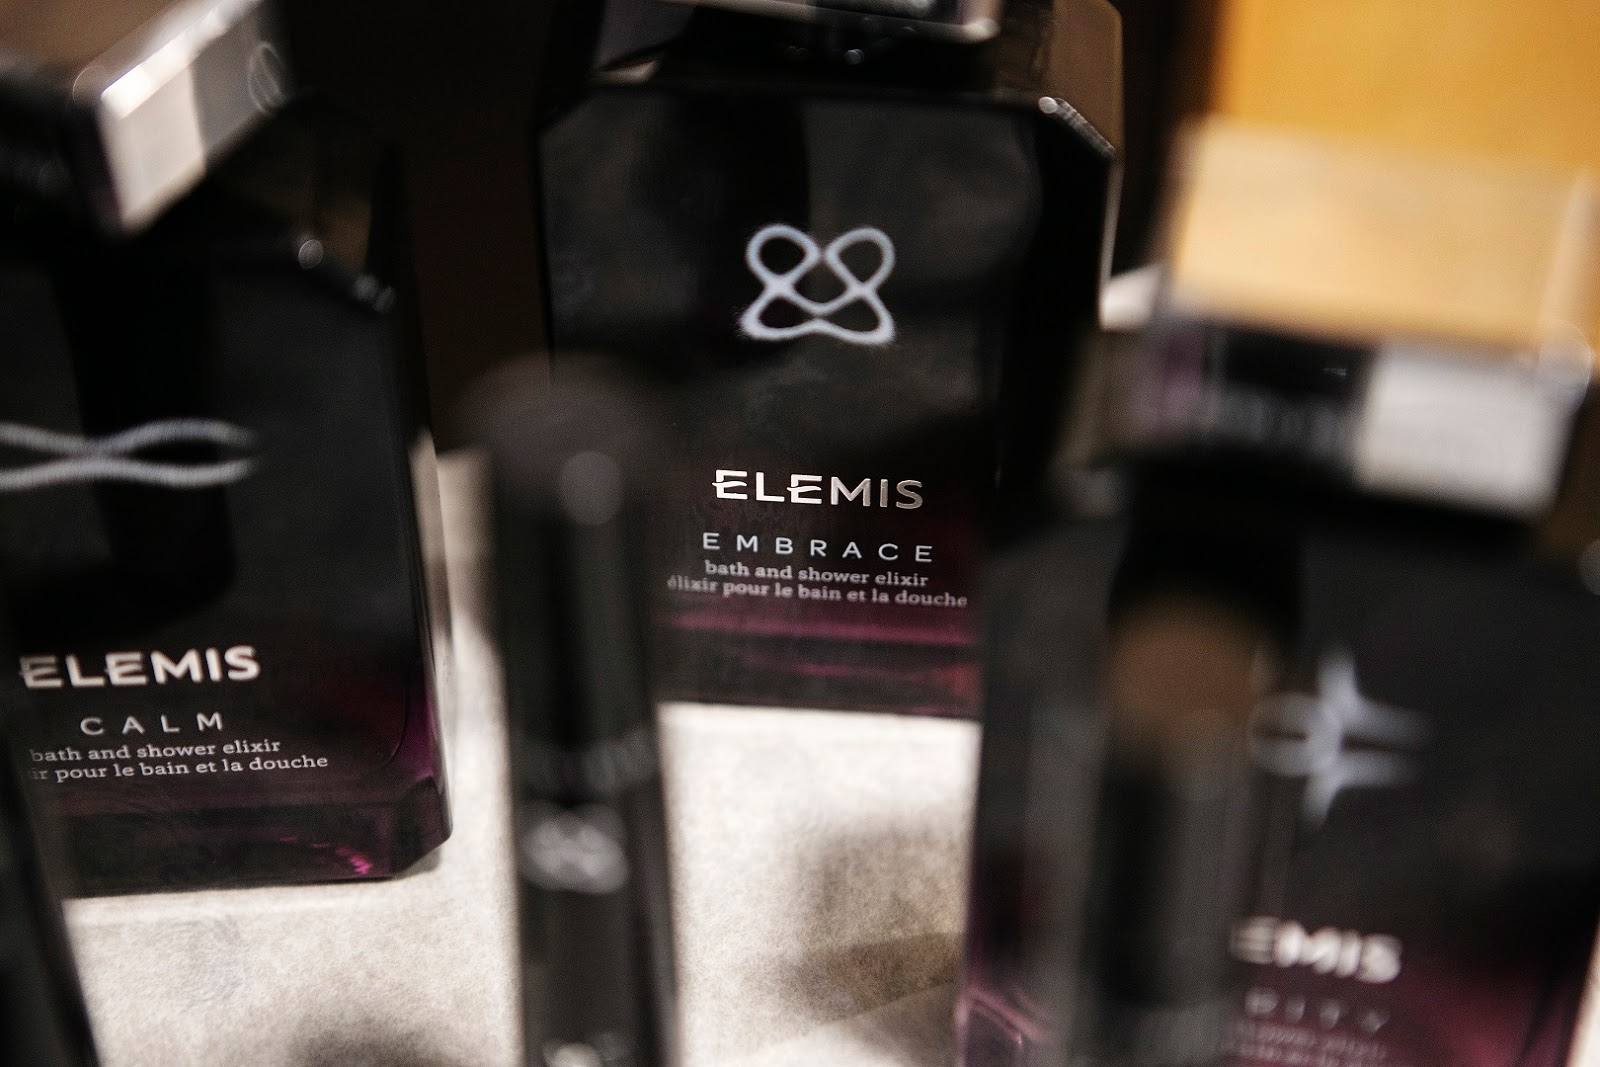 Elemis at the Matfen Hall Spa